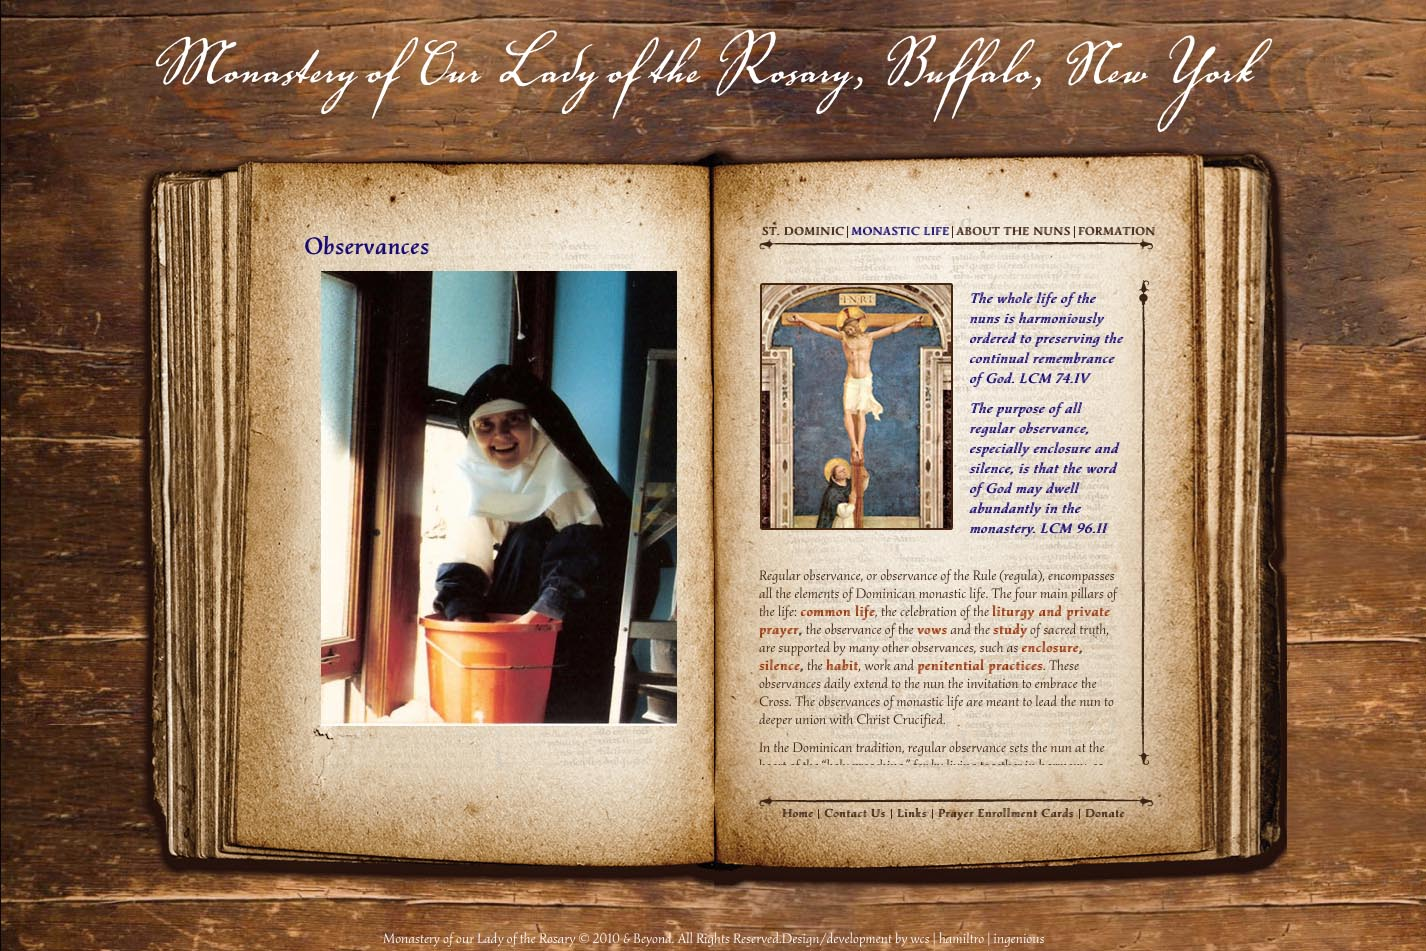 web design for a monastery - observances page